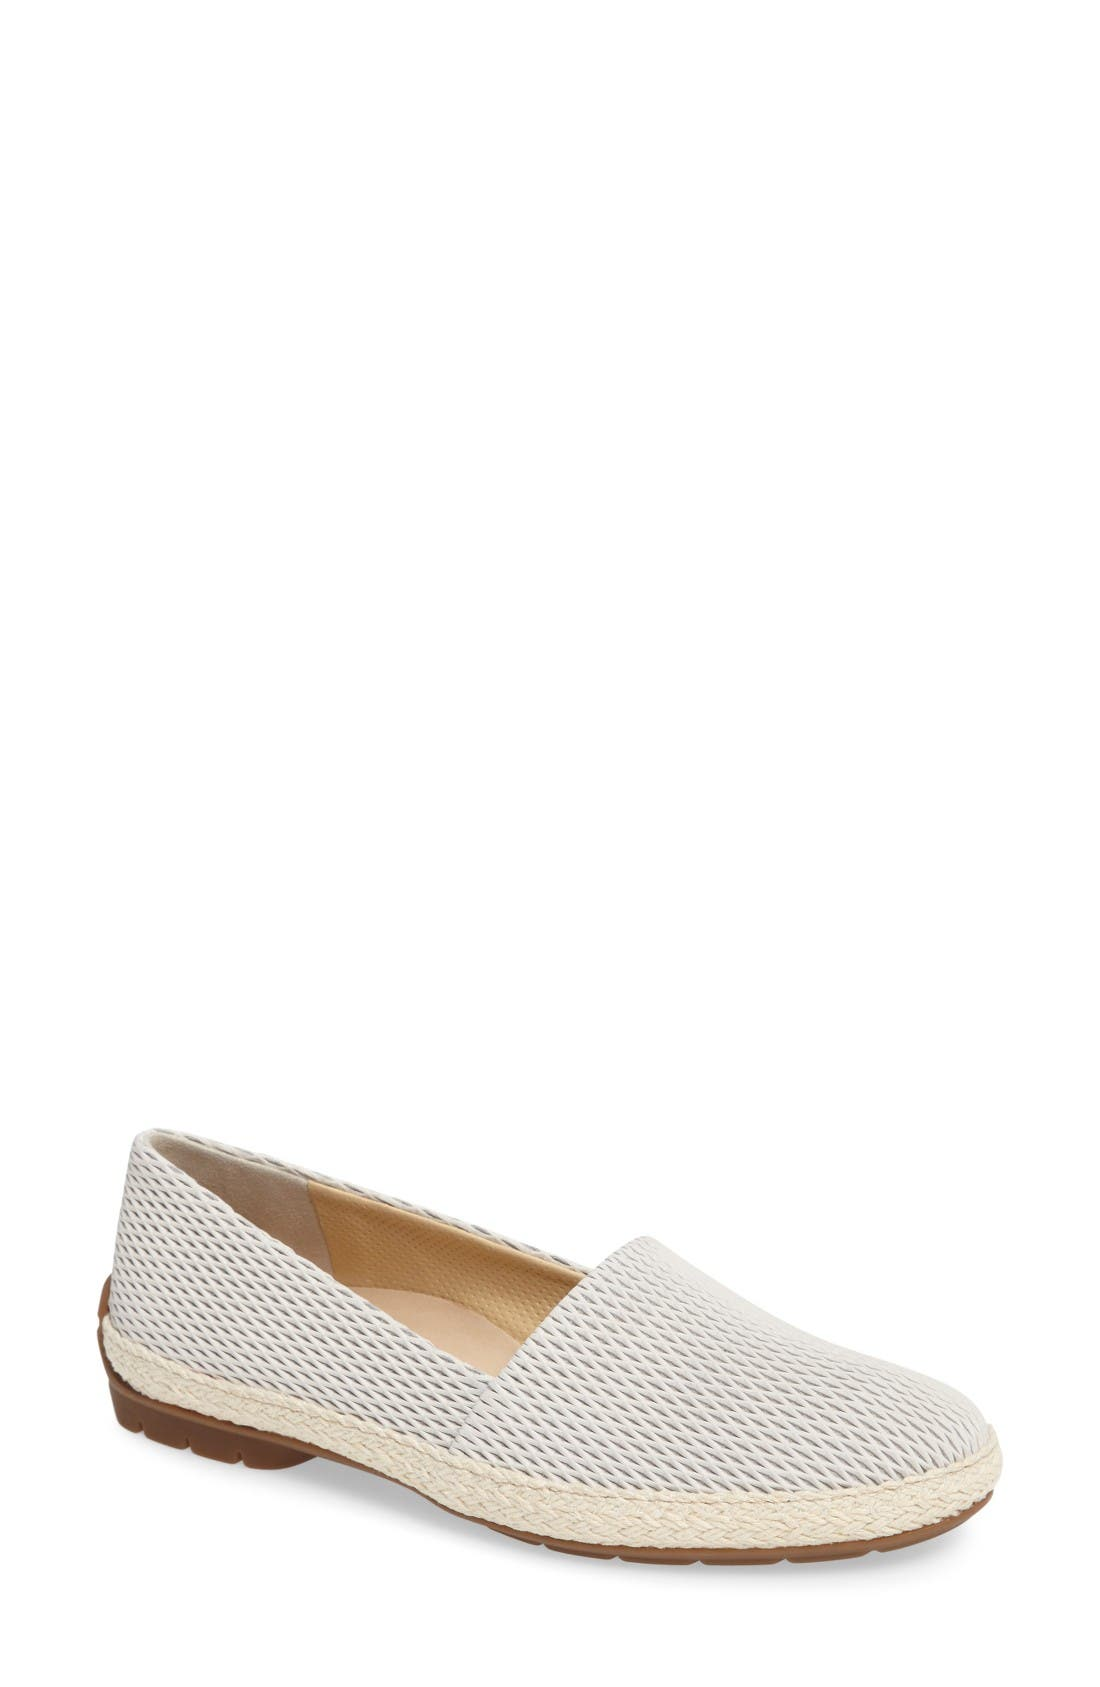 Paul Green Layla Espadrille Flat (Women)